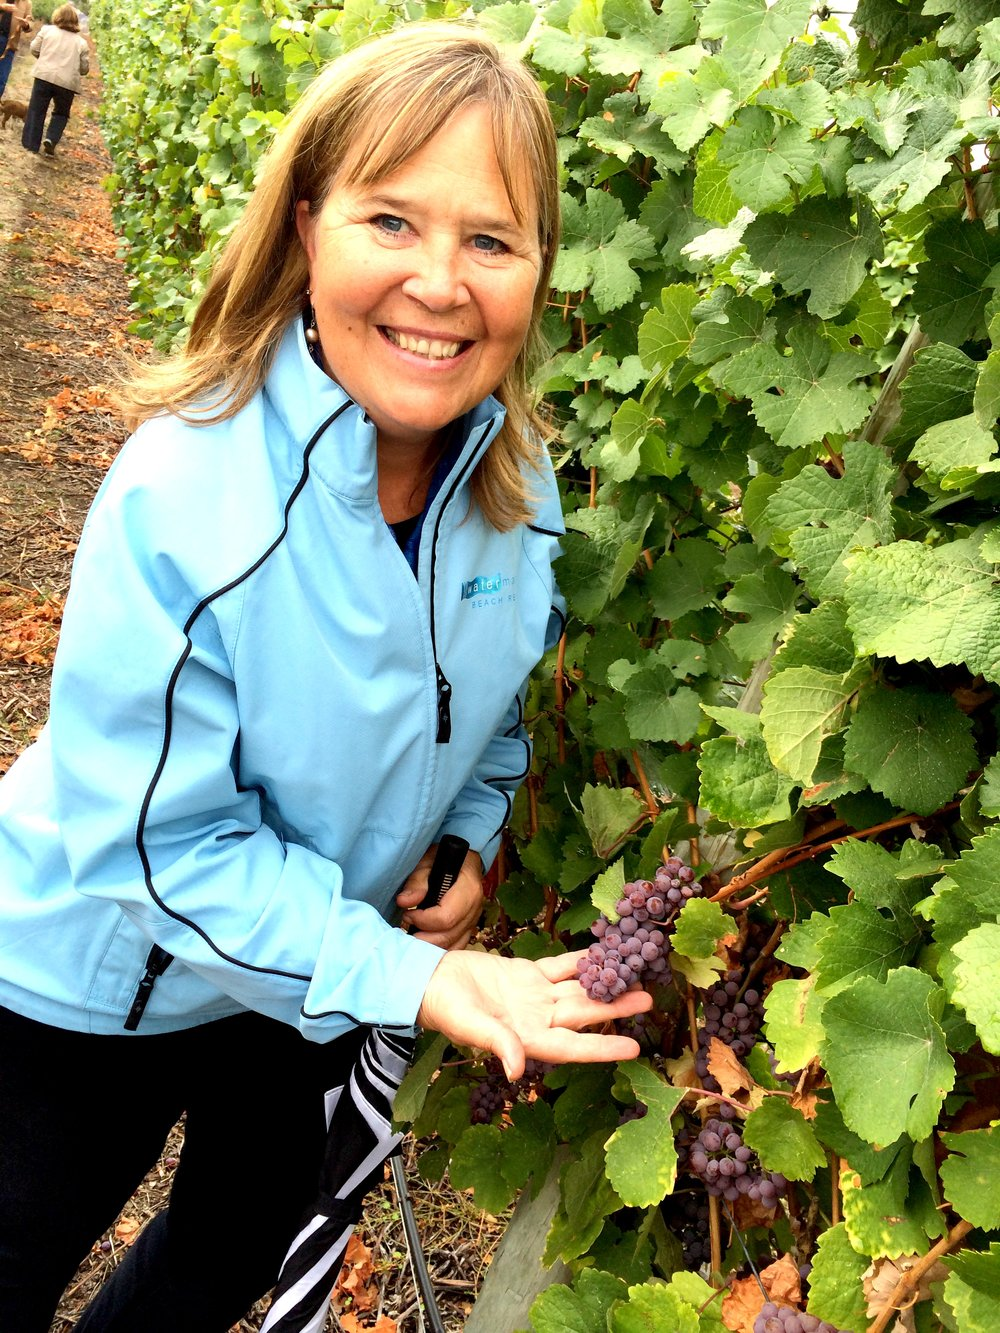 Ingrid in vineyard.jpg